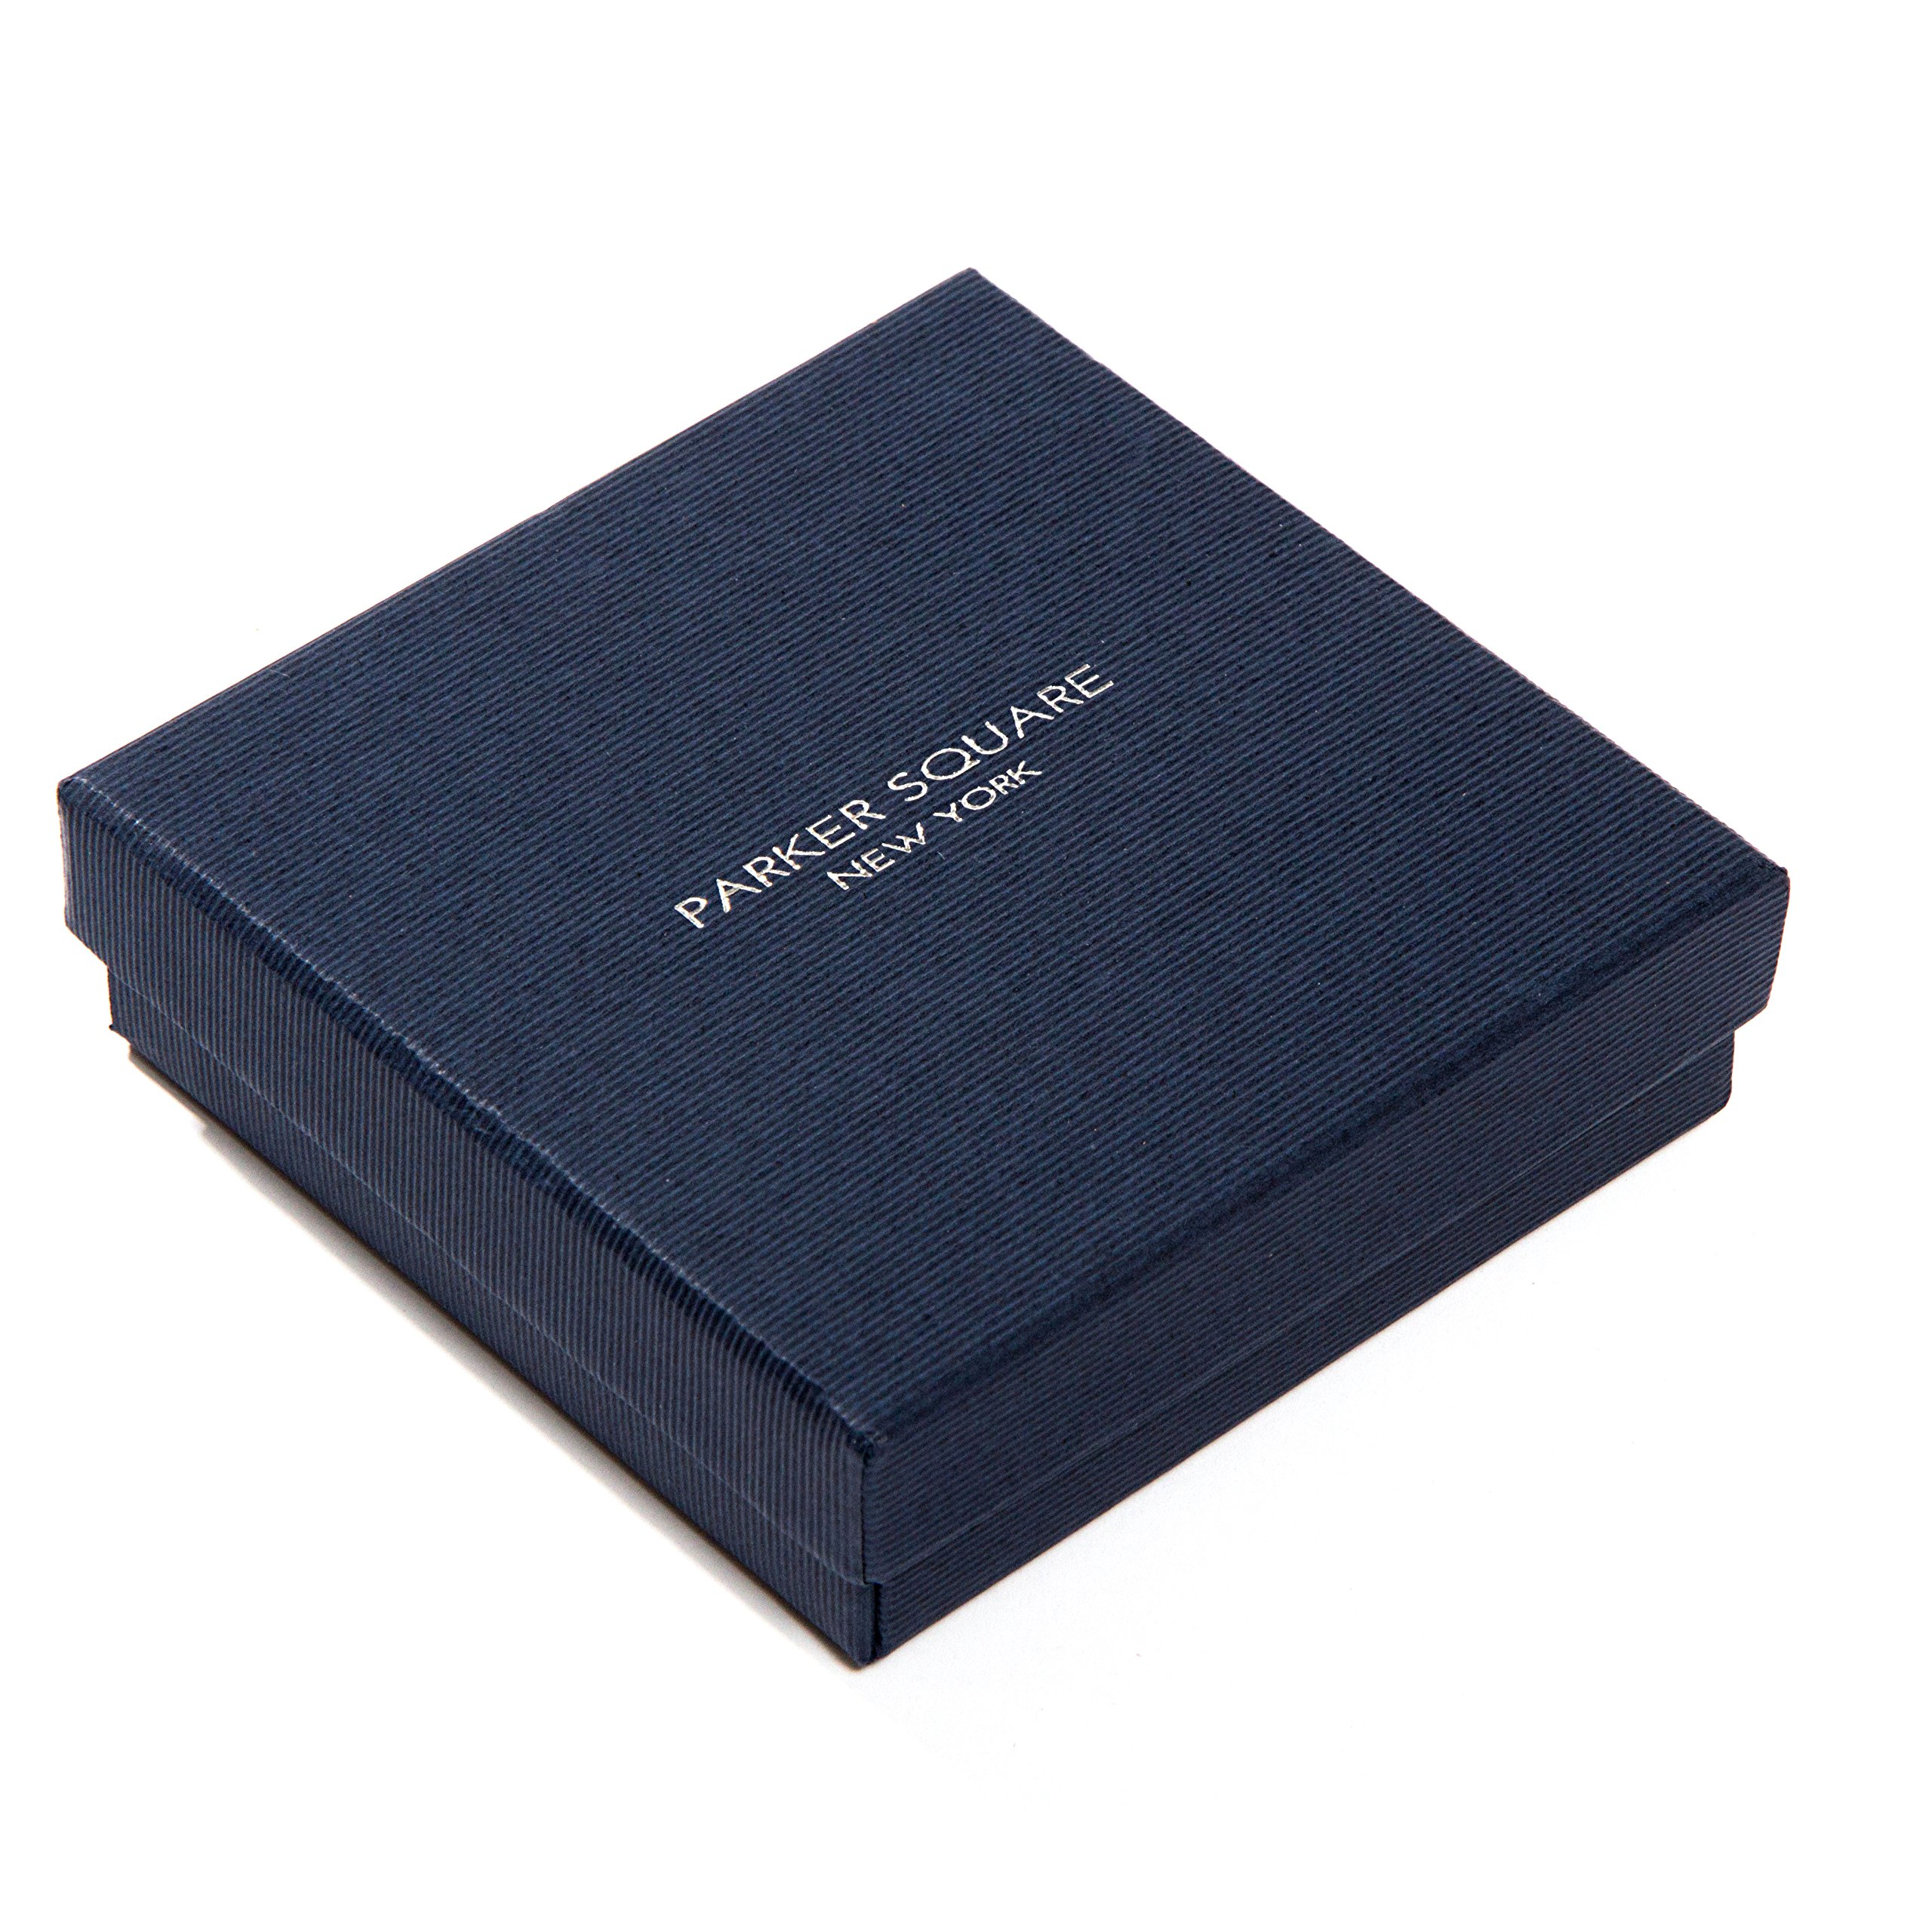 Parker Square Secret Night Box Light up LED, The World's Best Slim Engagement Ring Box by Parker Square (Image #7)